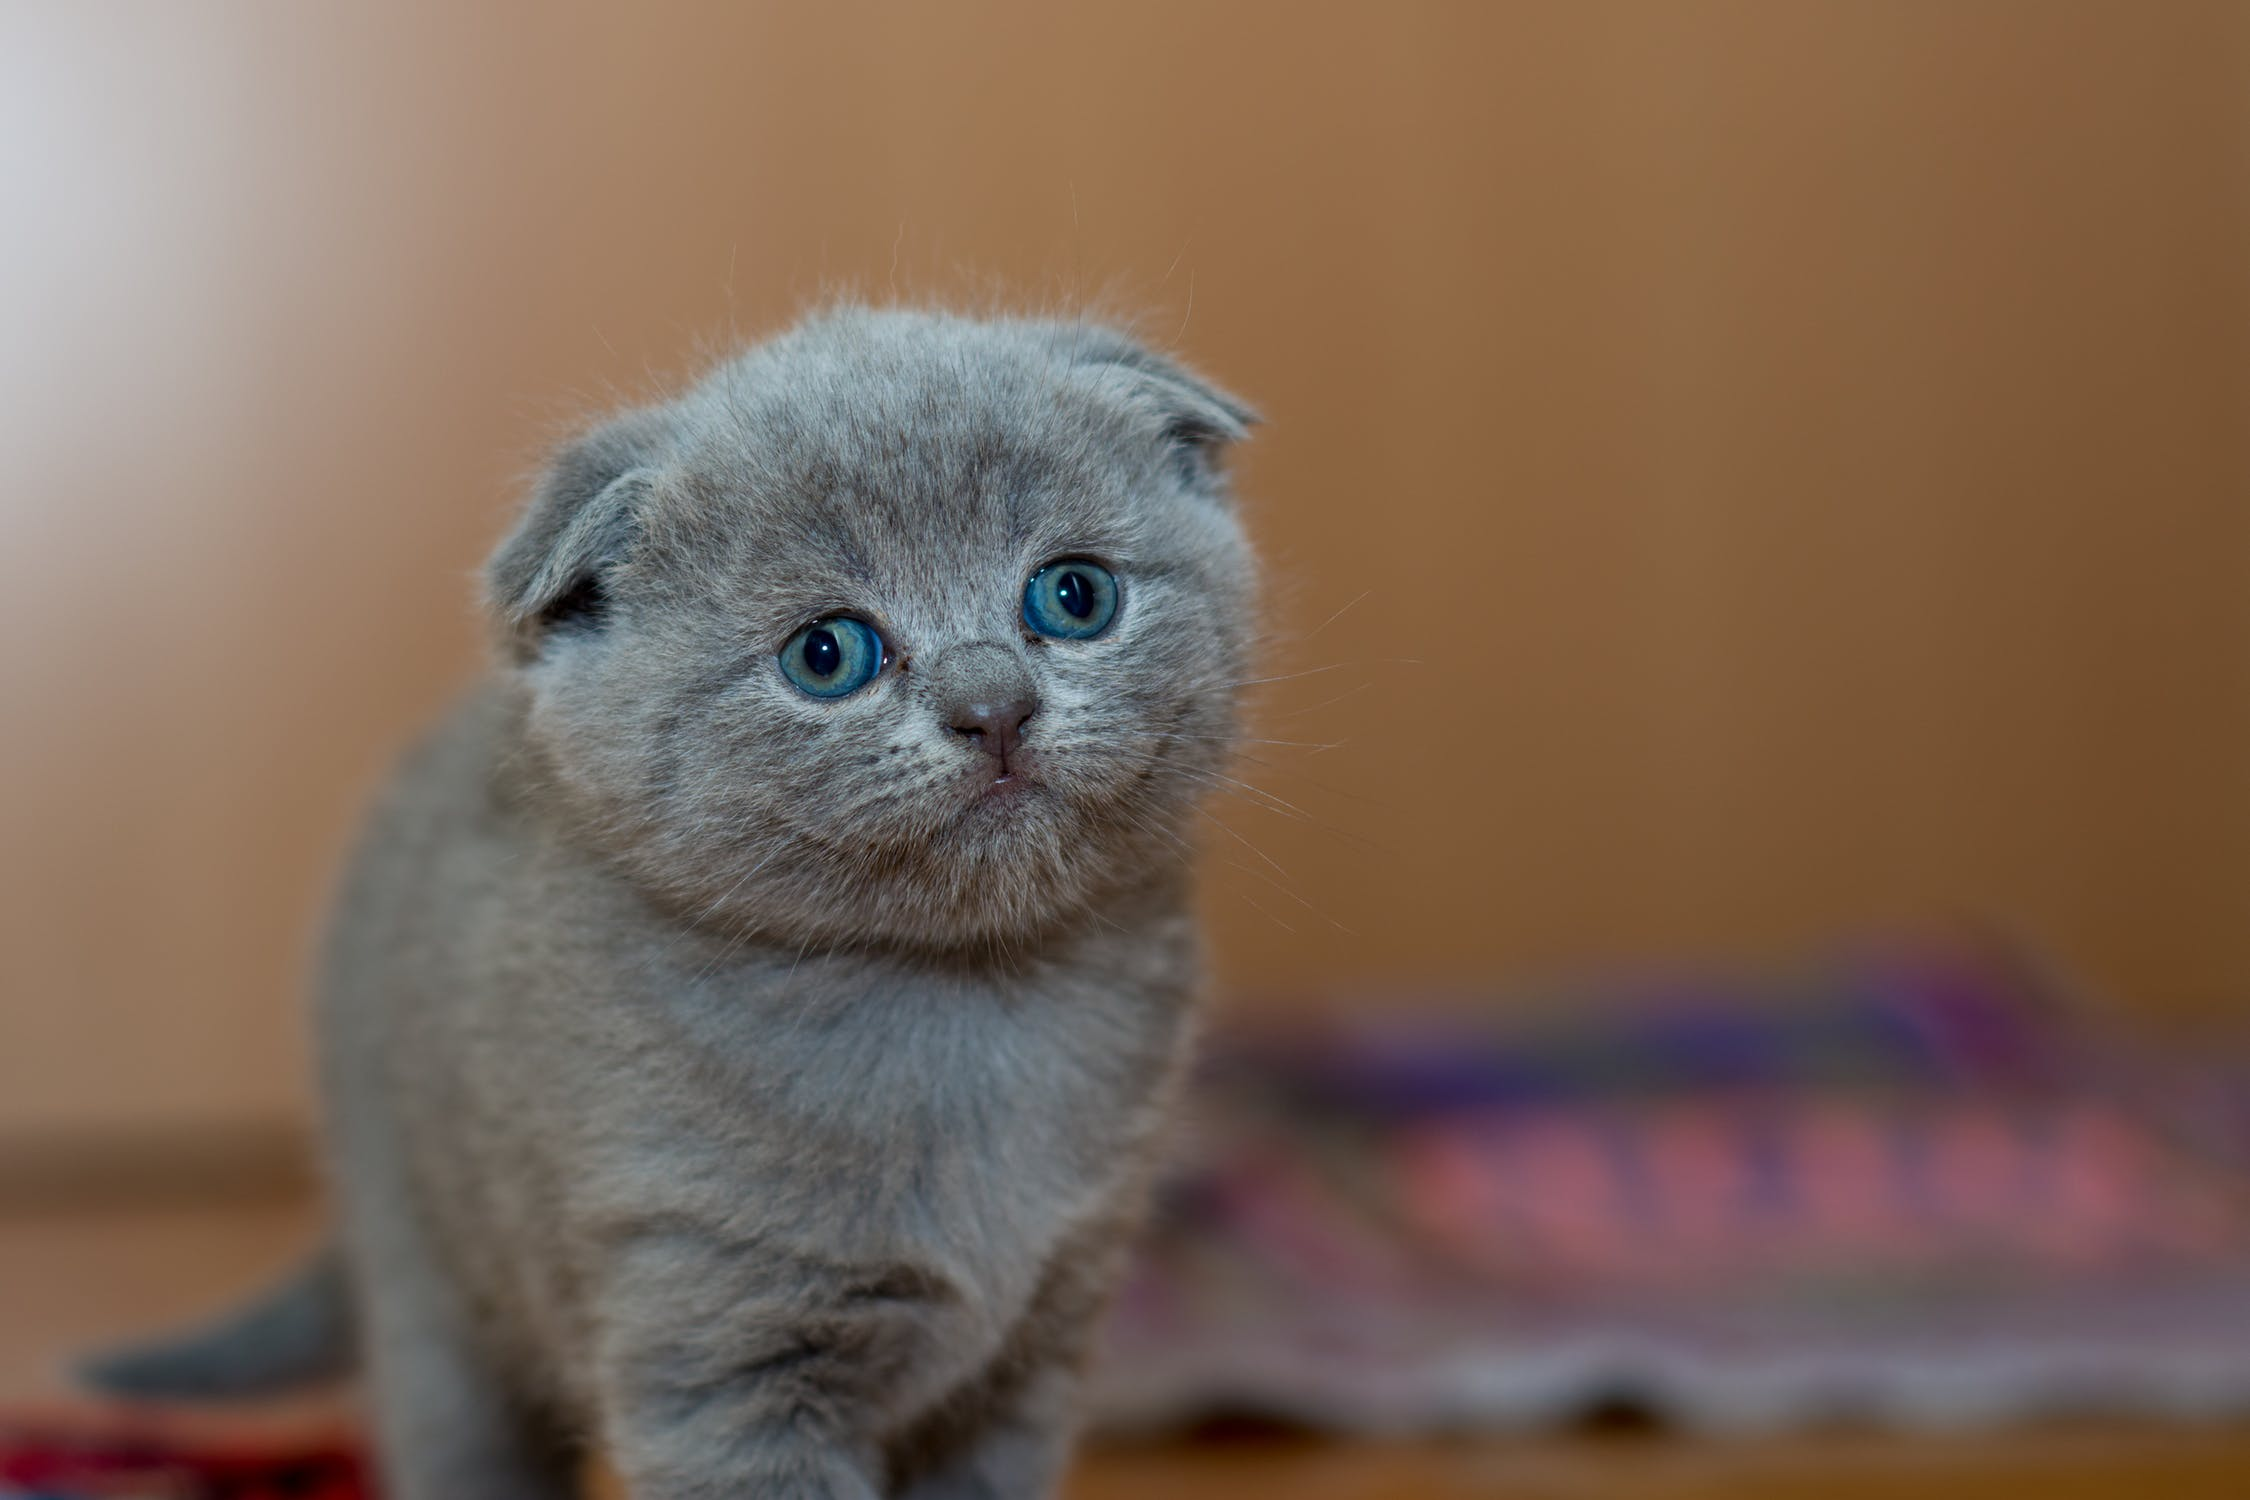 A grey flat-faced kitten with blue-green eyes looking at the camera against a blurred background.